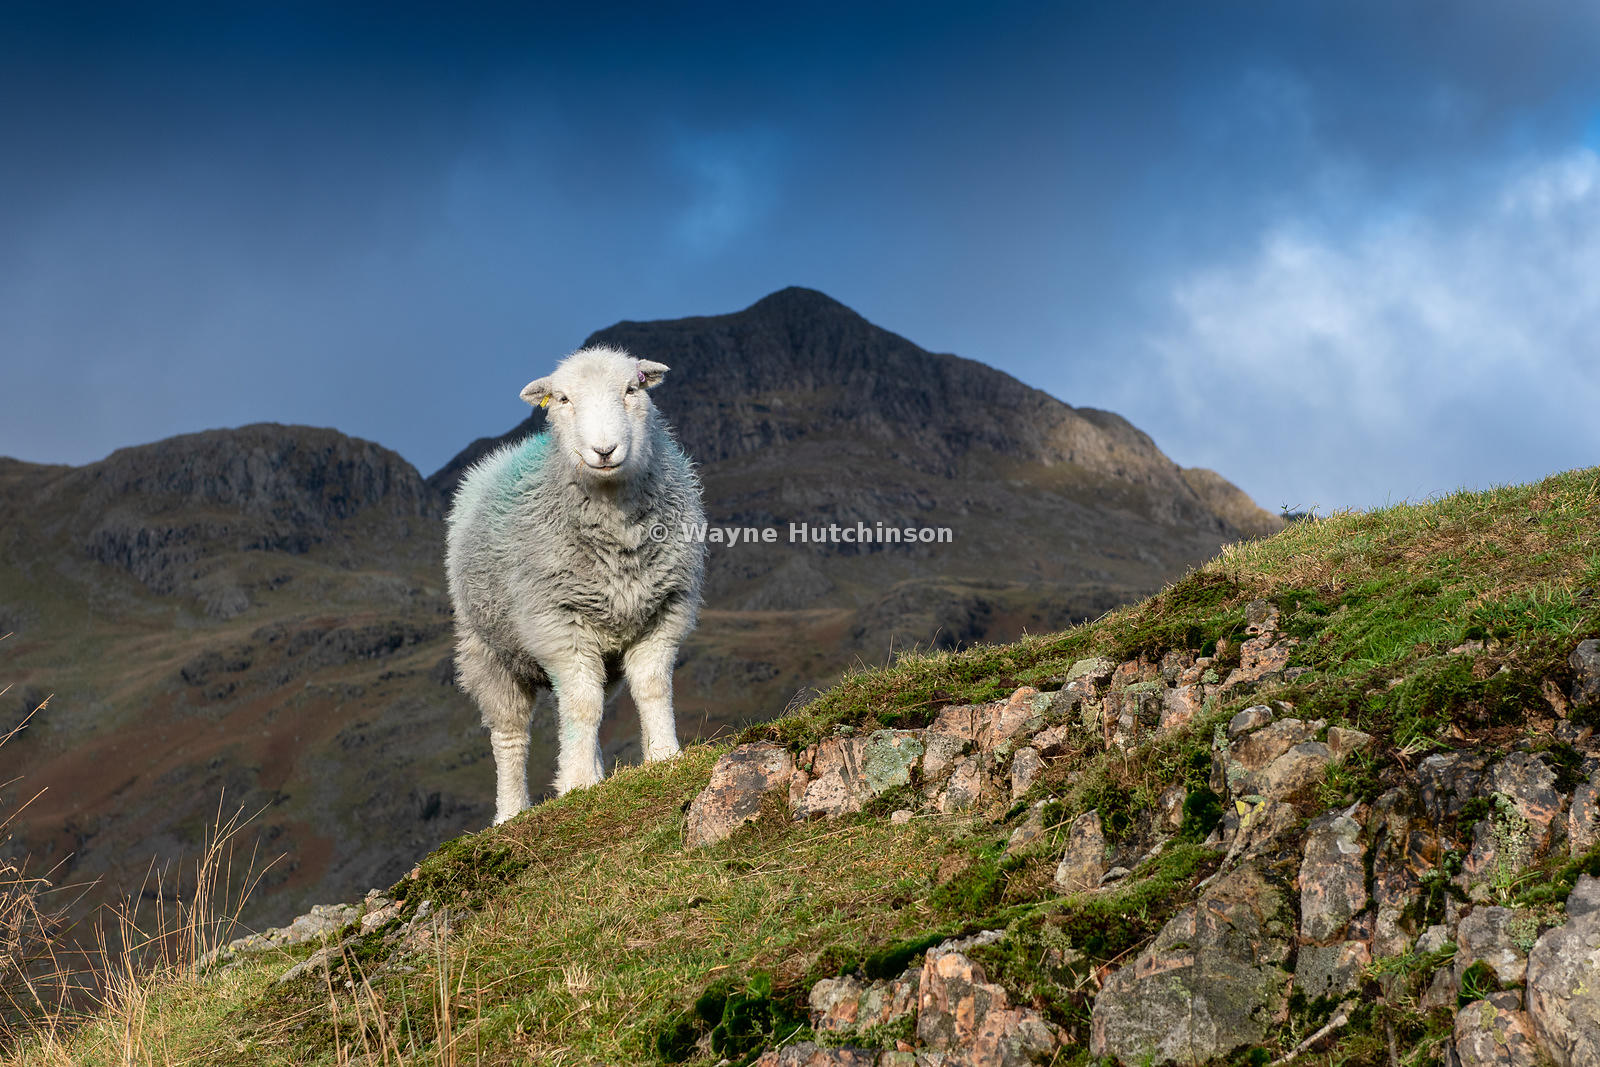 Herdwick sheep grazing fell in the Langdales, after tupping time in early winter. Cumbria, UK